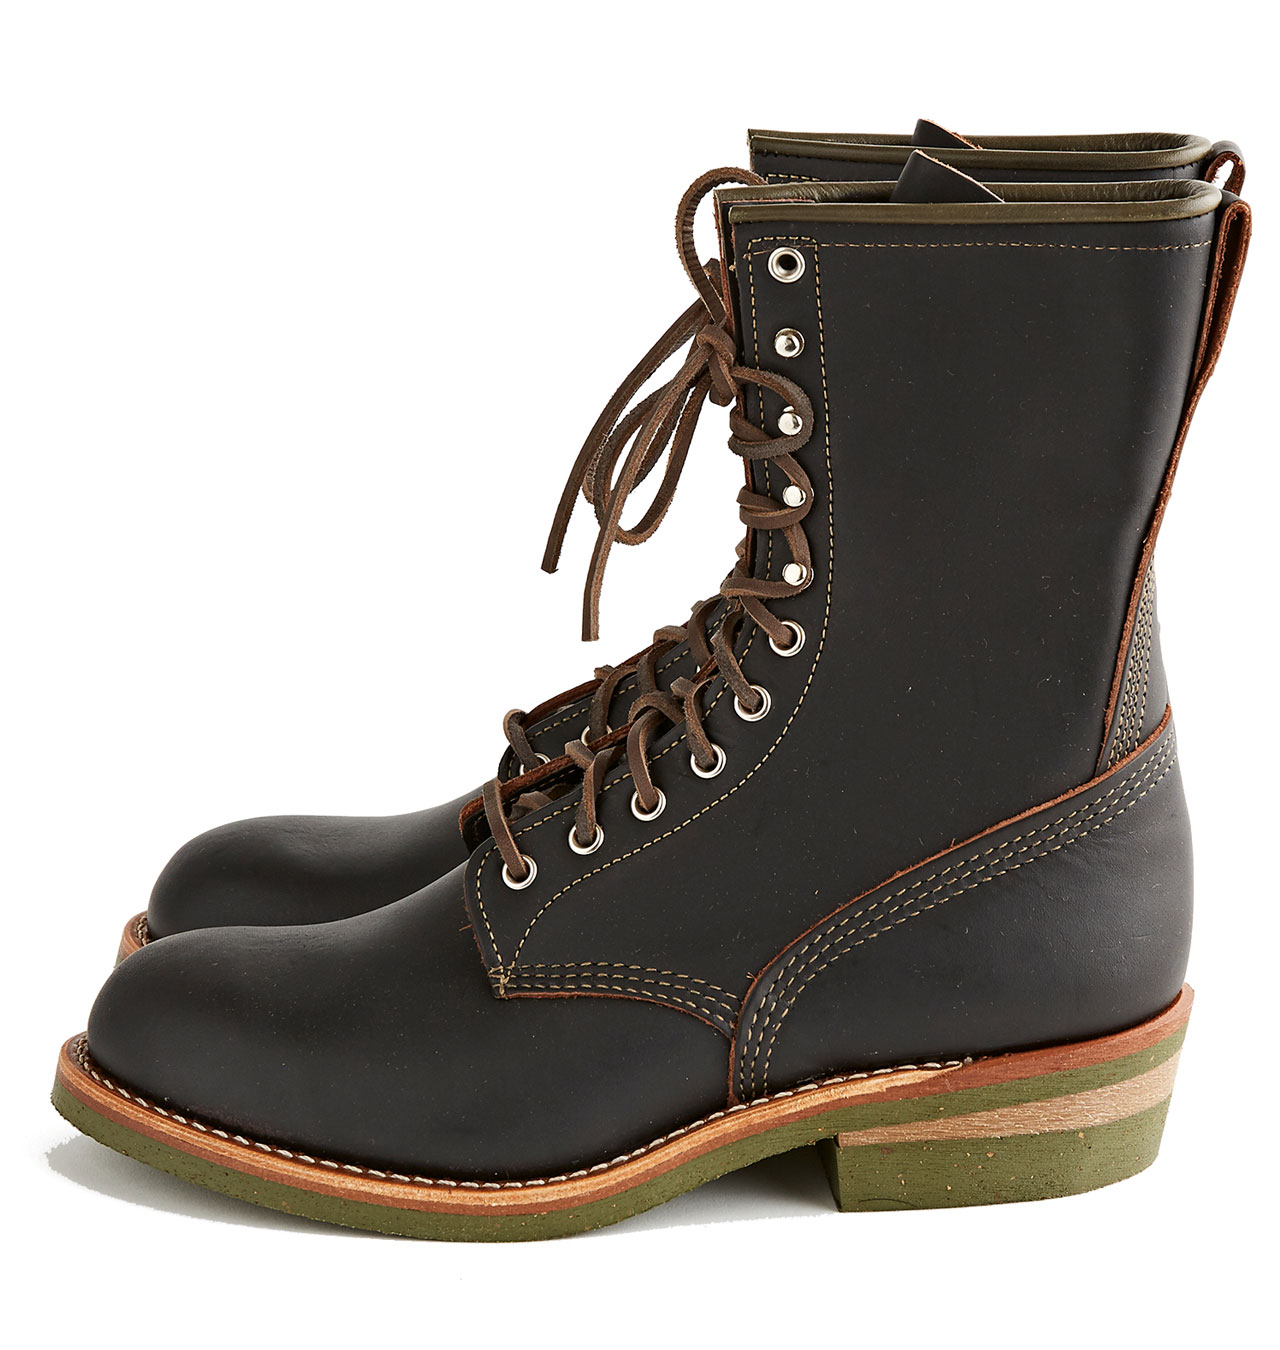 Red Wing Shoes x Indigofera No 4328 Climber Boot - Black Prairie Leather